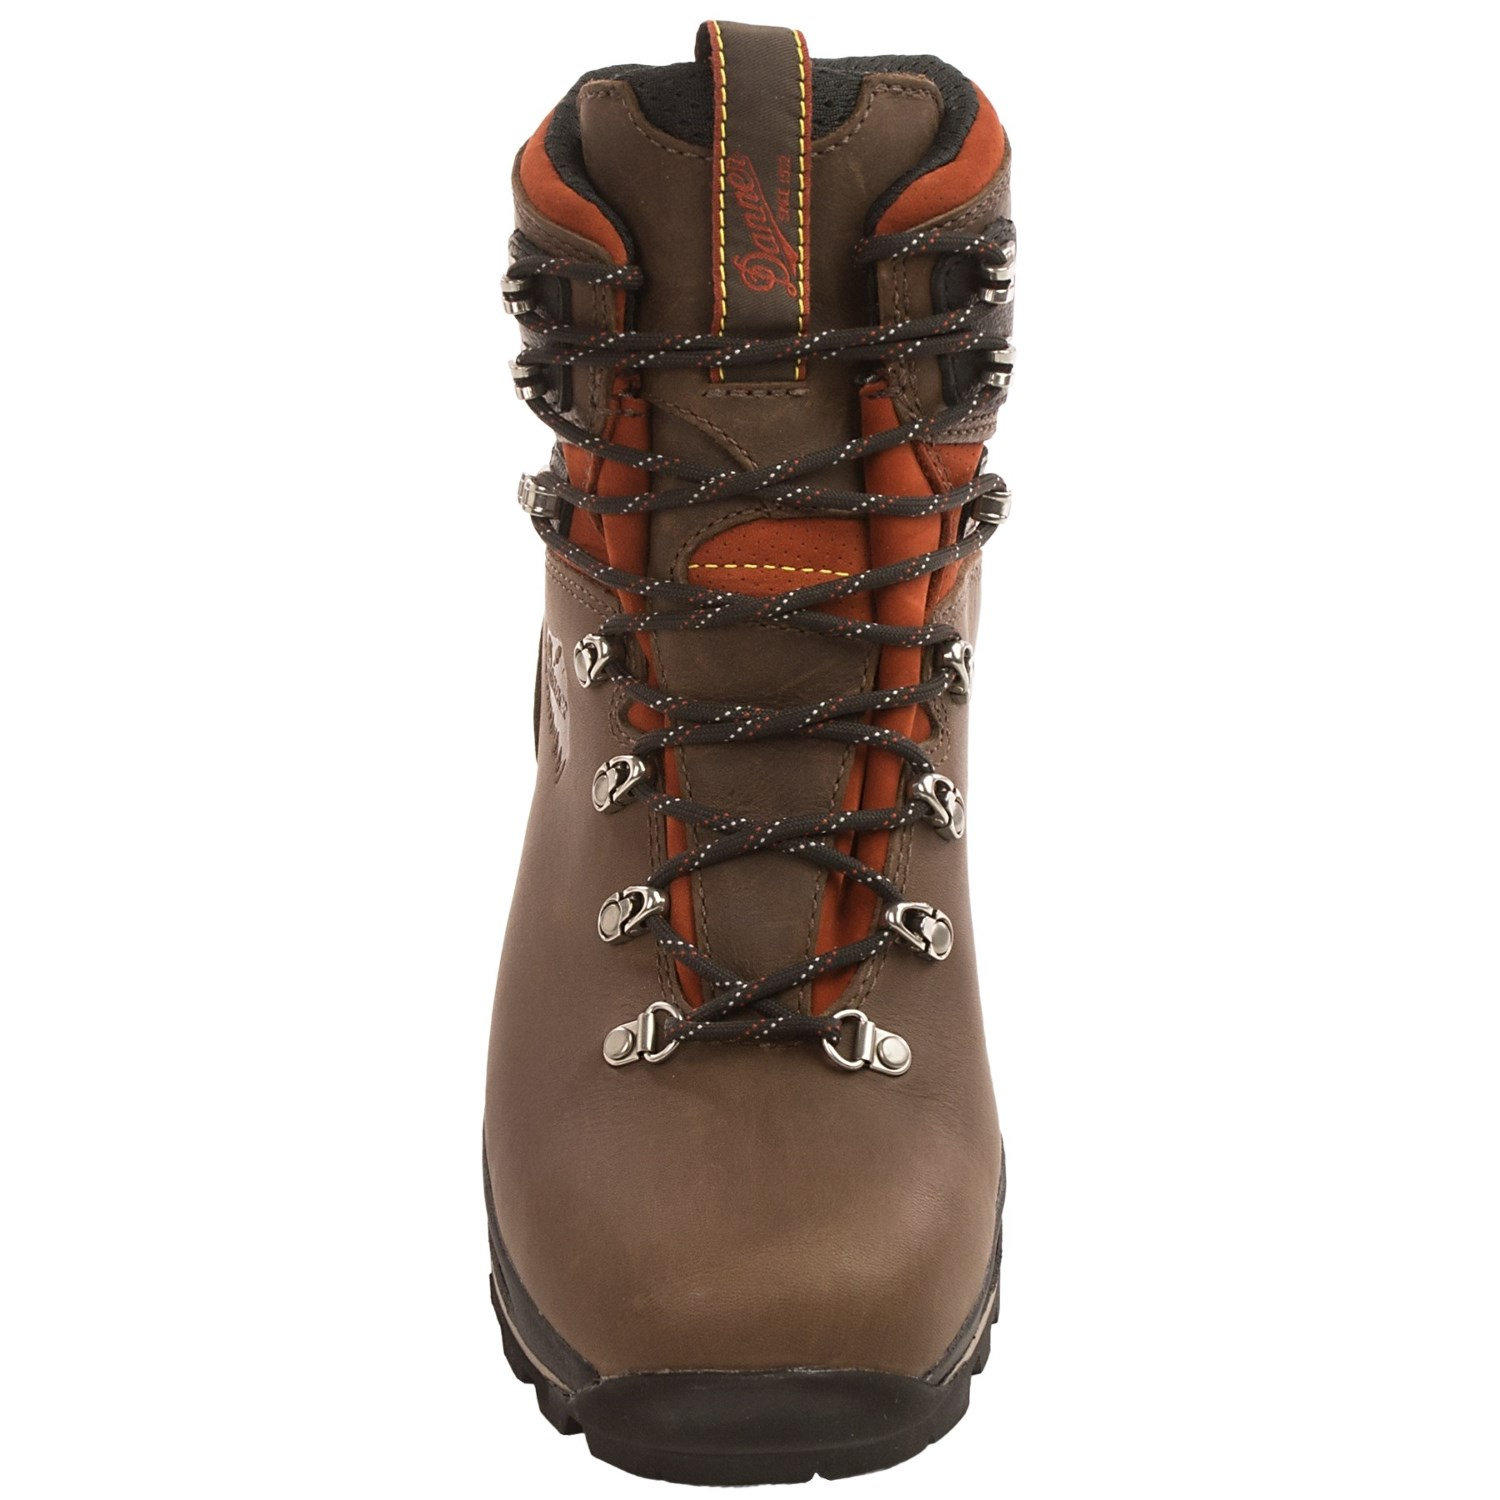 Danner Crag Rat Gore Tex 174 Hiking Boots For Men Save 39